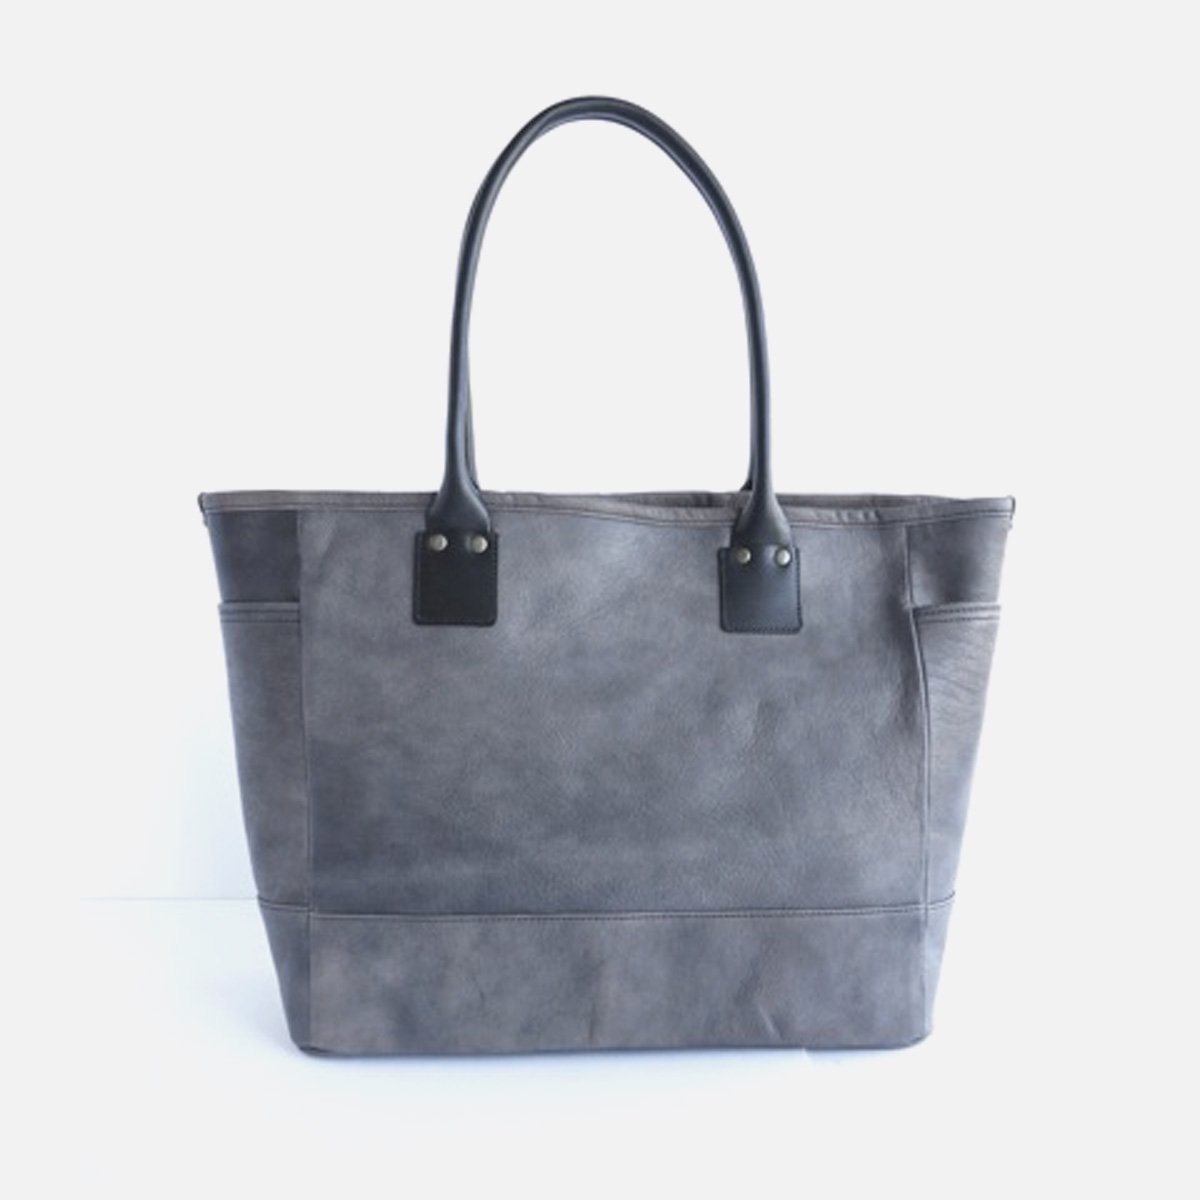 LEATHER&SILVER MOTO BAG19 GOAT LEATHER TOTE BAG (CHARCOAL)